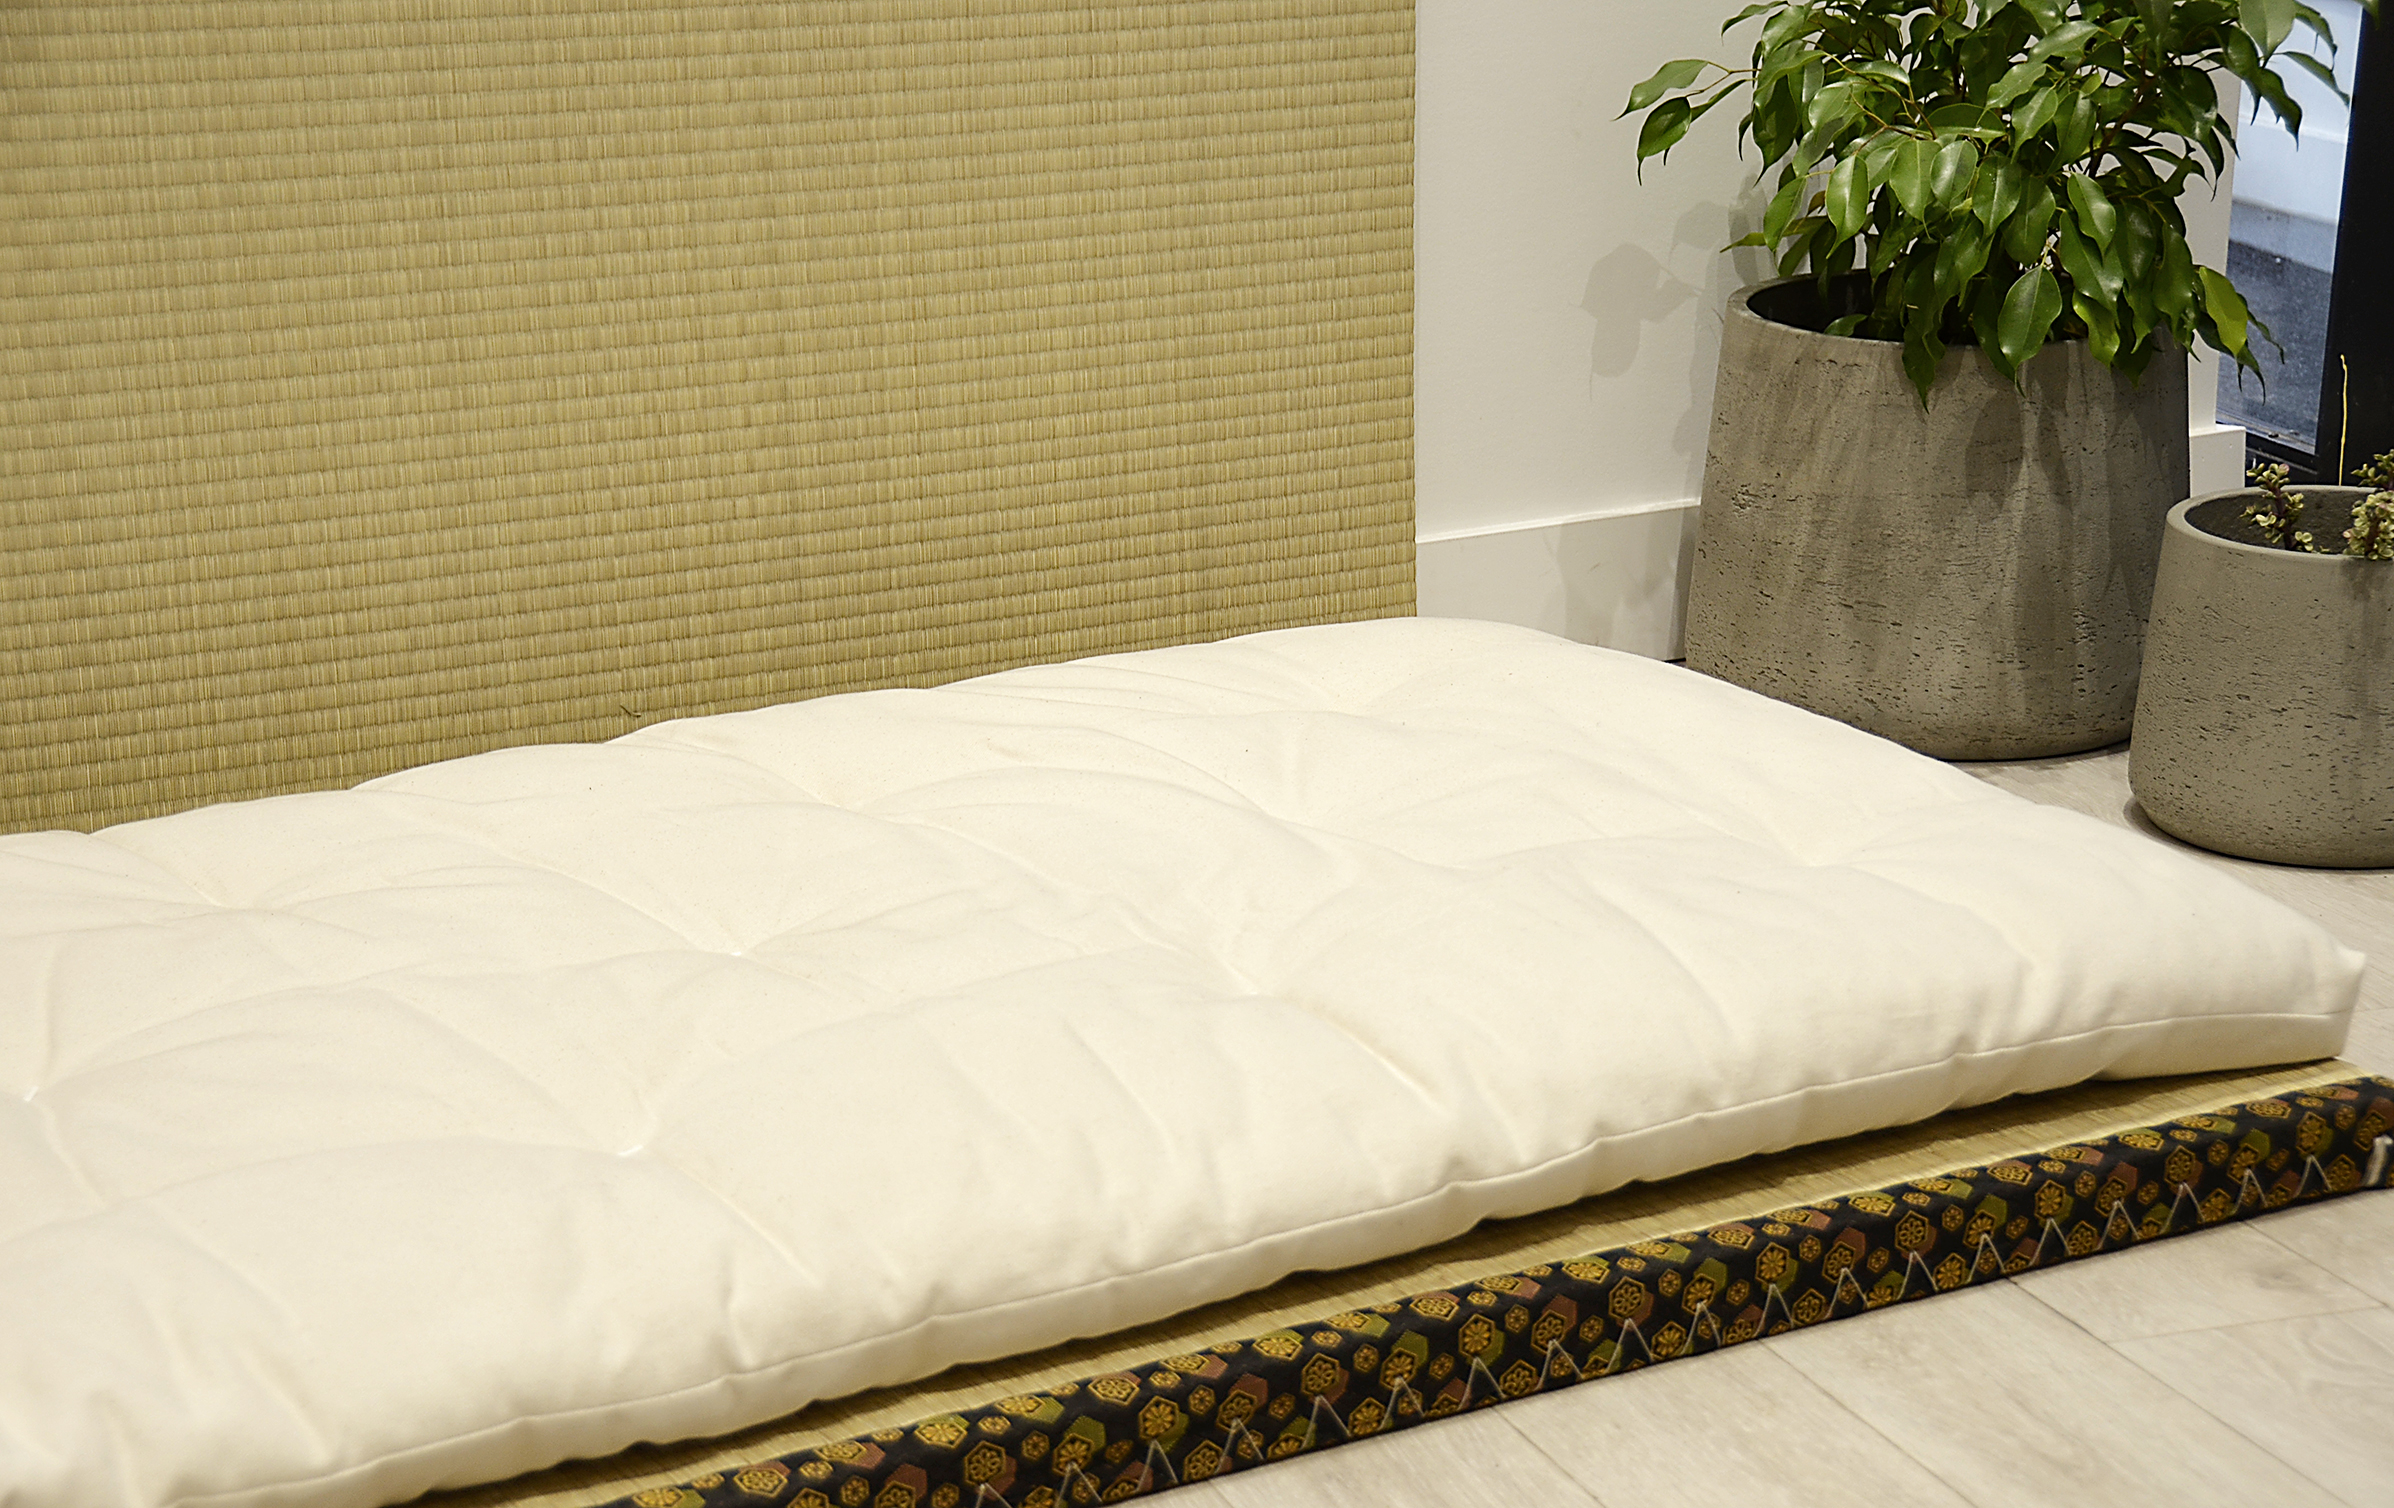 Japanese Futon Sets Eucalyptus Shikibuton Japanese Futon Futon D Or Natural Mattresses